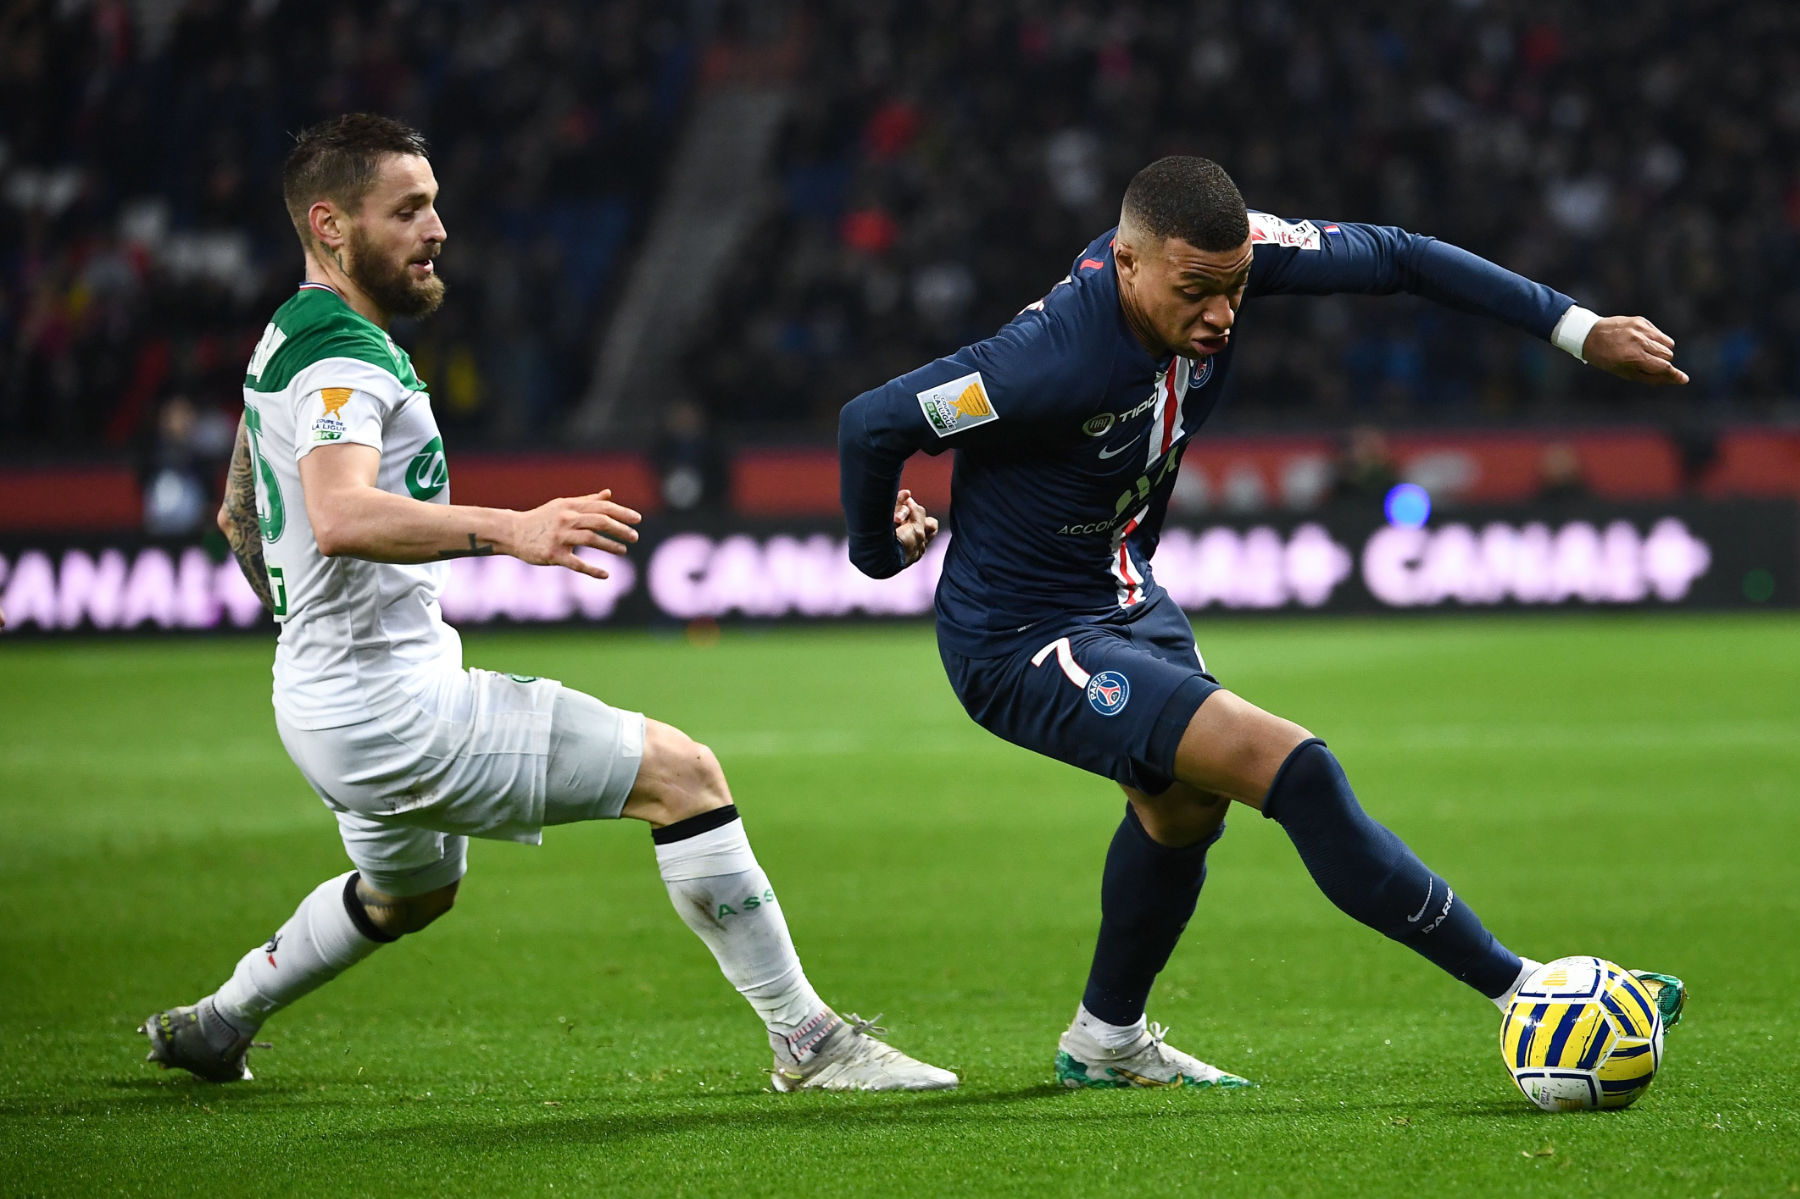 Coupe de France Final Between PSG and Saint-Étienne Could Be ...